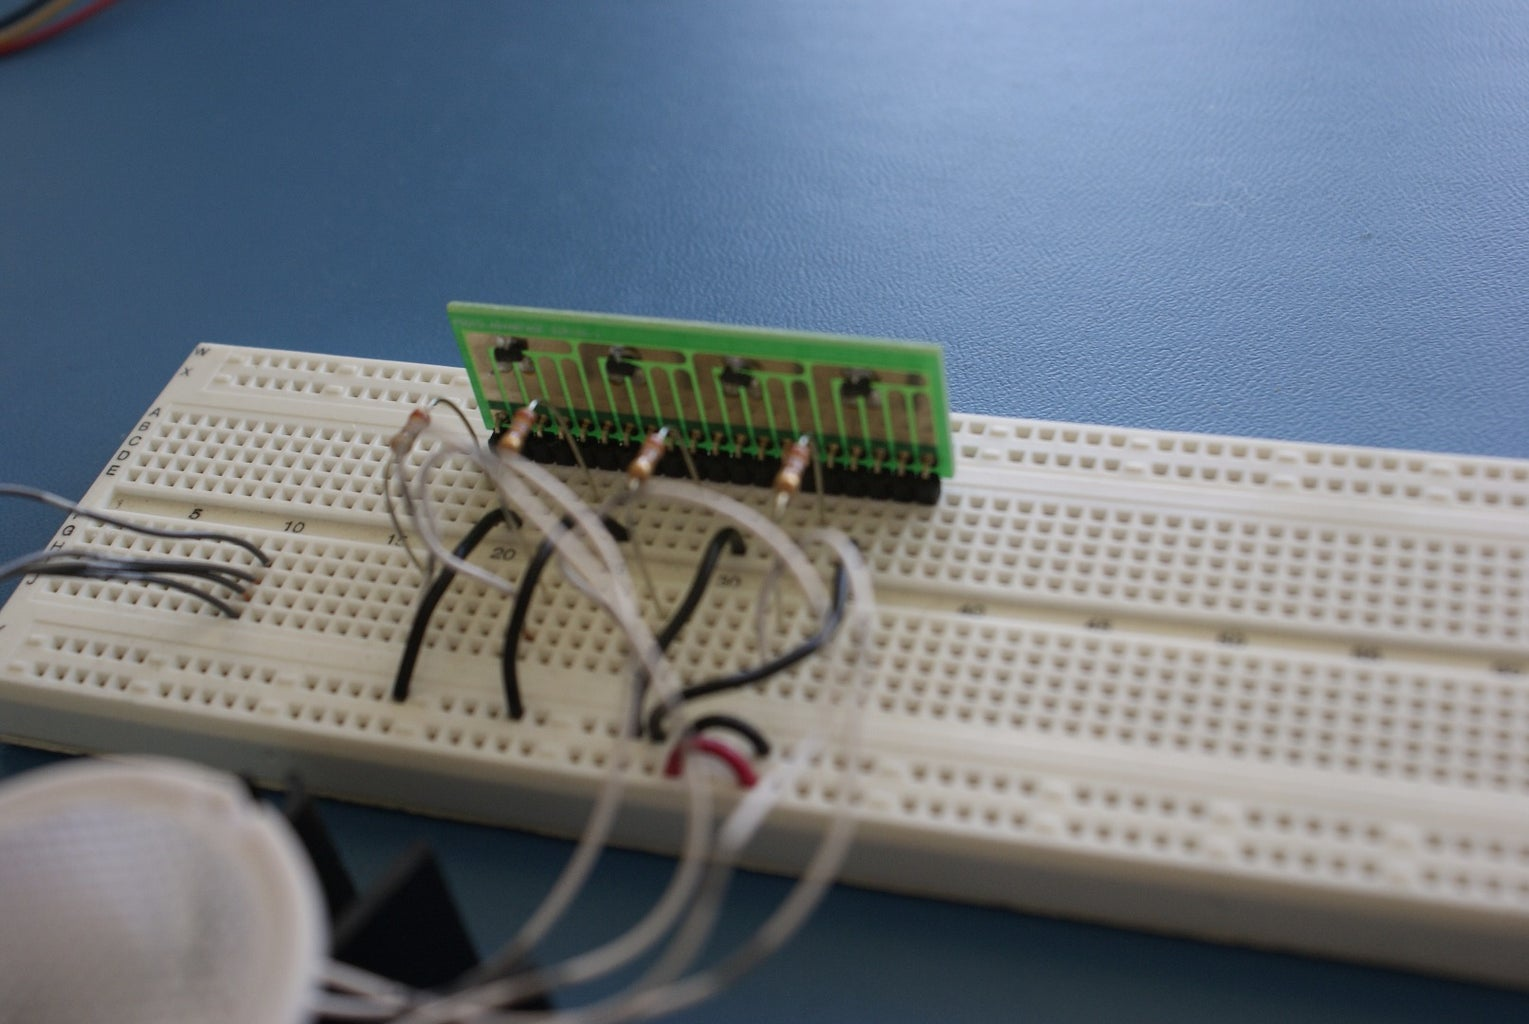 Connect the LED to the MOSFETs